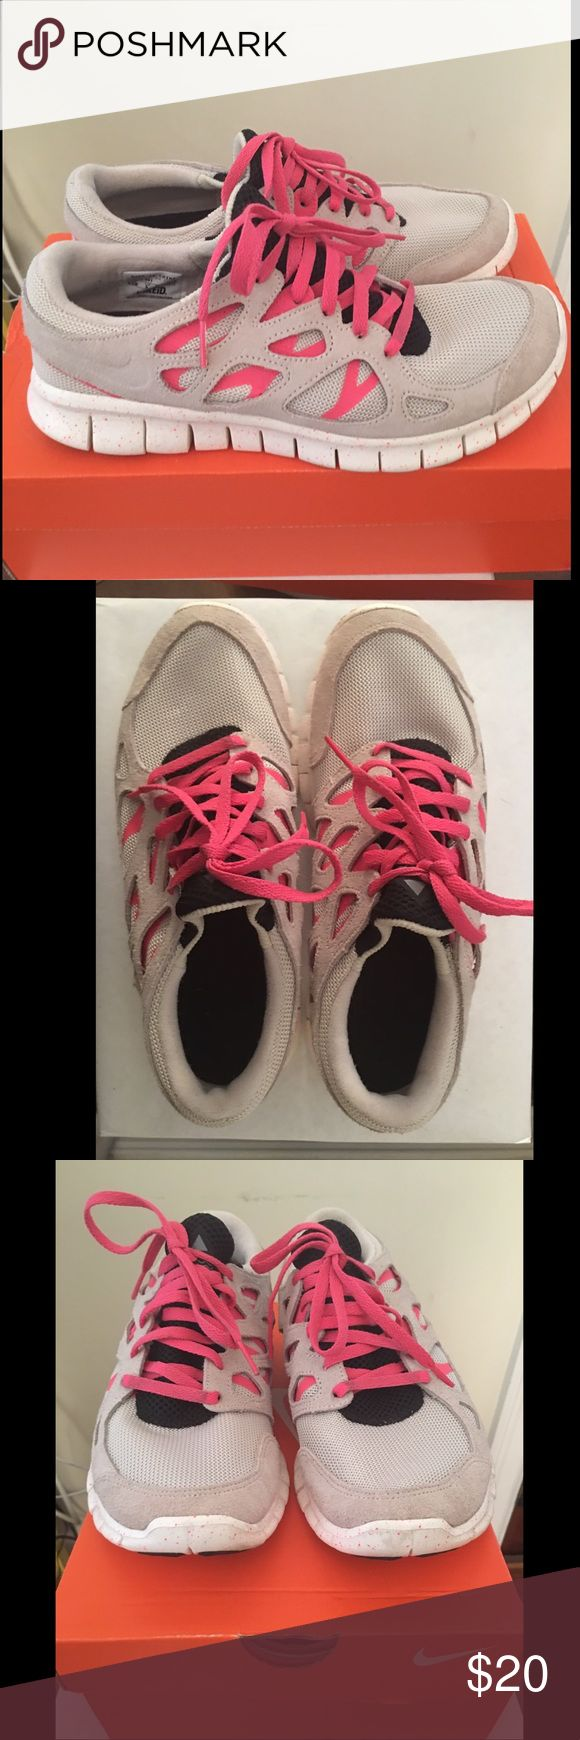 Nike Free 2 Gray & Pink LIKE NEW! Nike Free 2 Gray & Pink LIKE NEW! 8.5 WIDE with Nike+. Never worn!! Nike Shoes Athletic Shoes